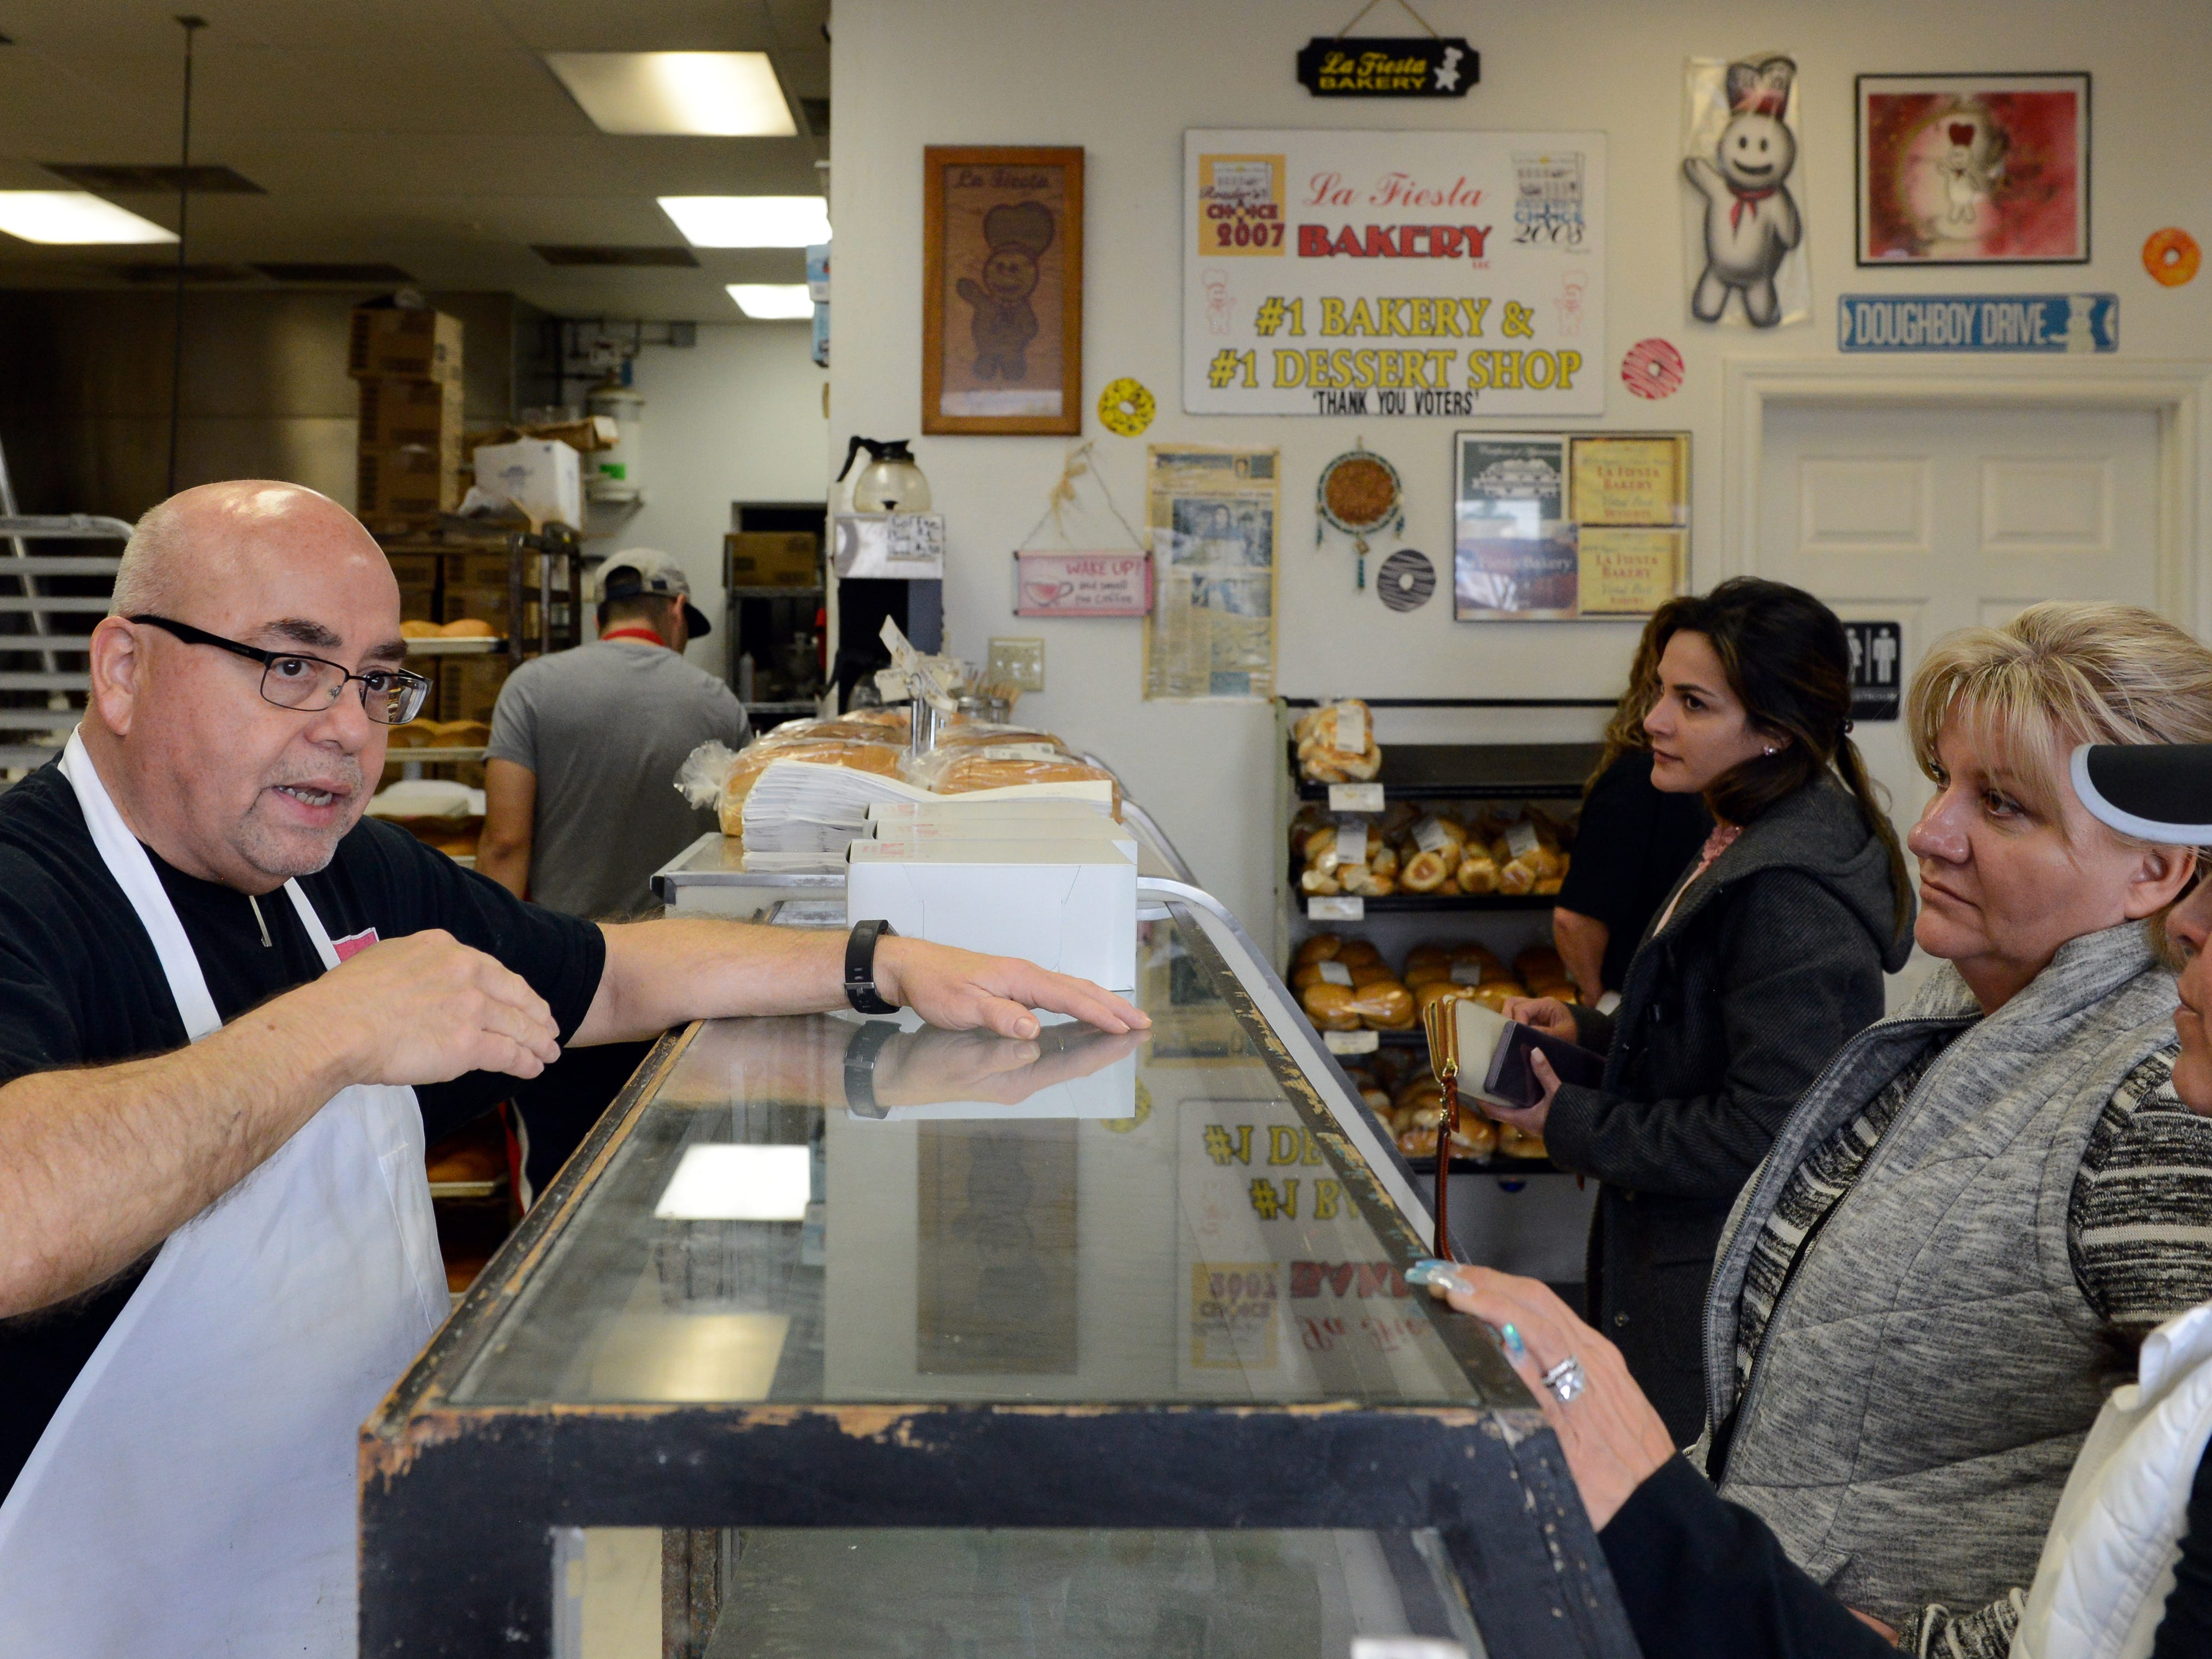 Ray Ortega, who owns La Fiesta Bakery with his wife Gina, speaks to Donna Cyp, right, and Jackie Jarisch at the bakery on Jan. 10, 2019. The bakery will be closing because of declining sales caused by the Valley Drive construction project.